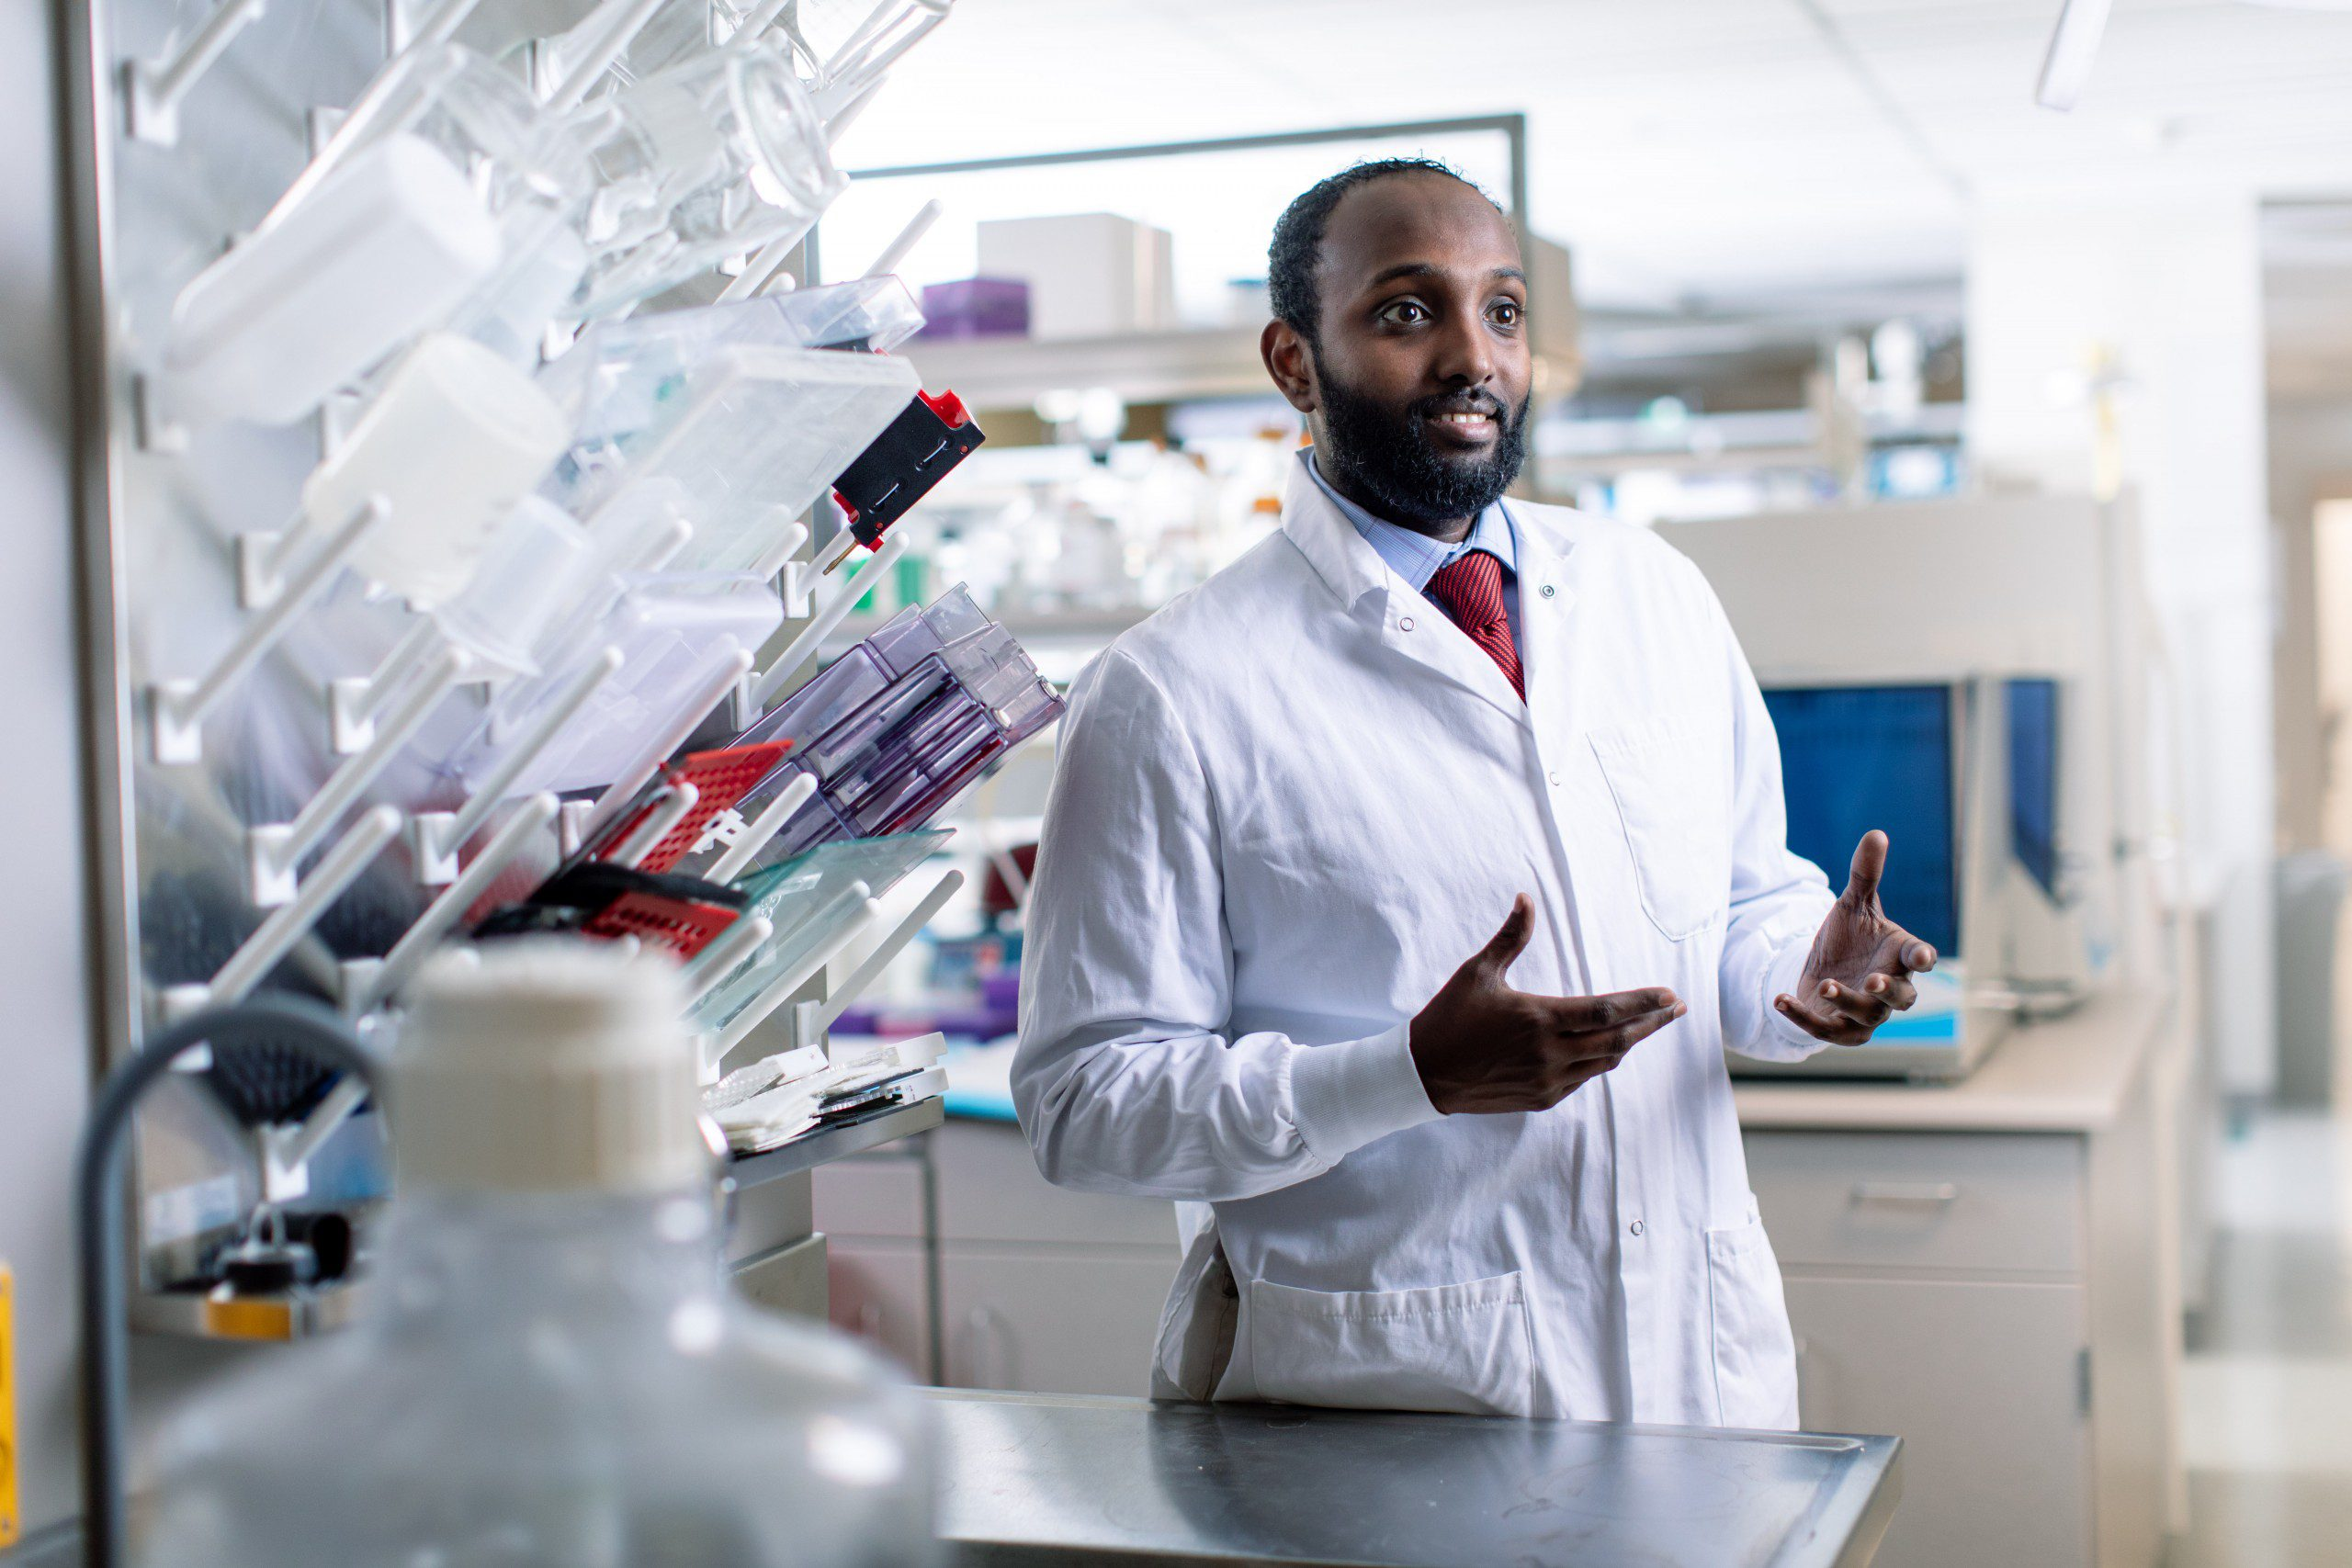 Portrait of Essa Mohamed wearing a lab coat in a laboratory.